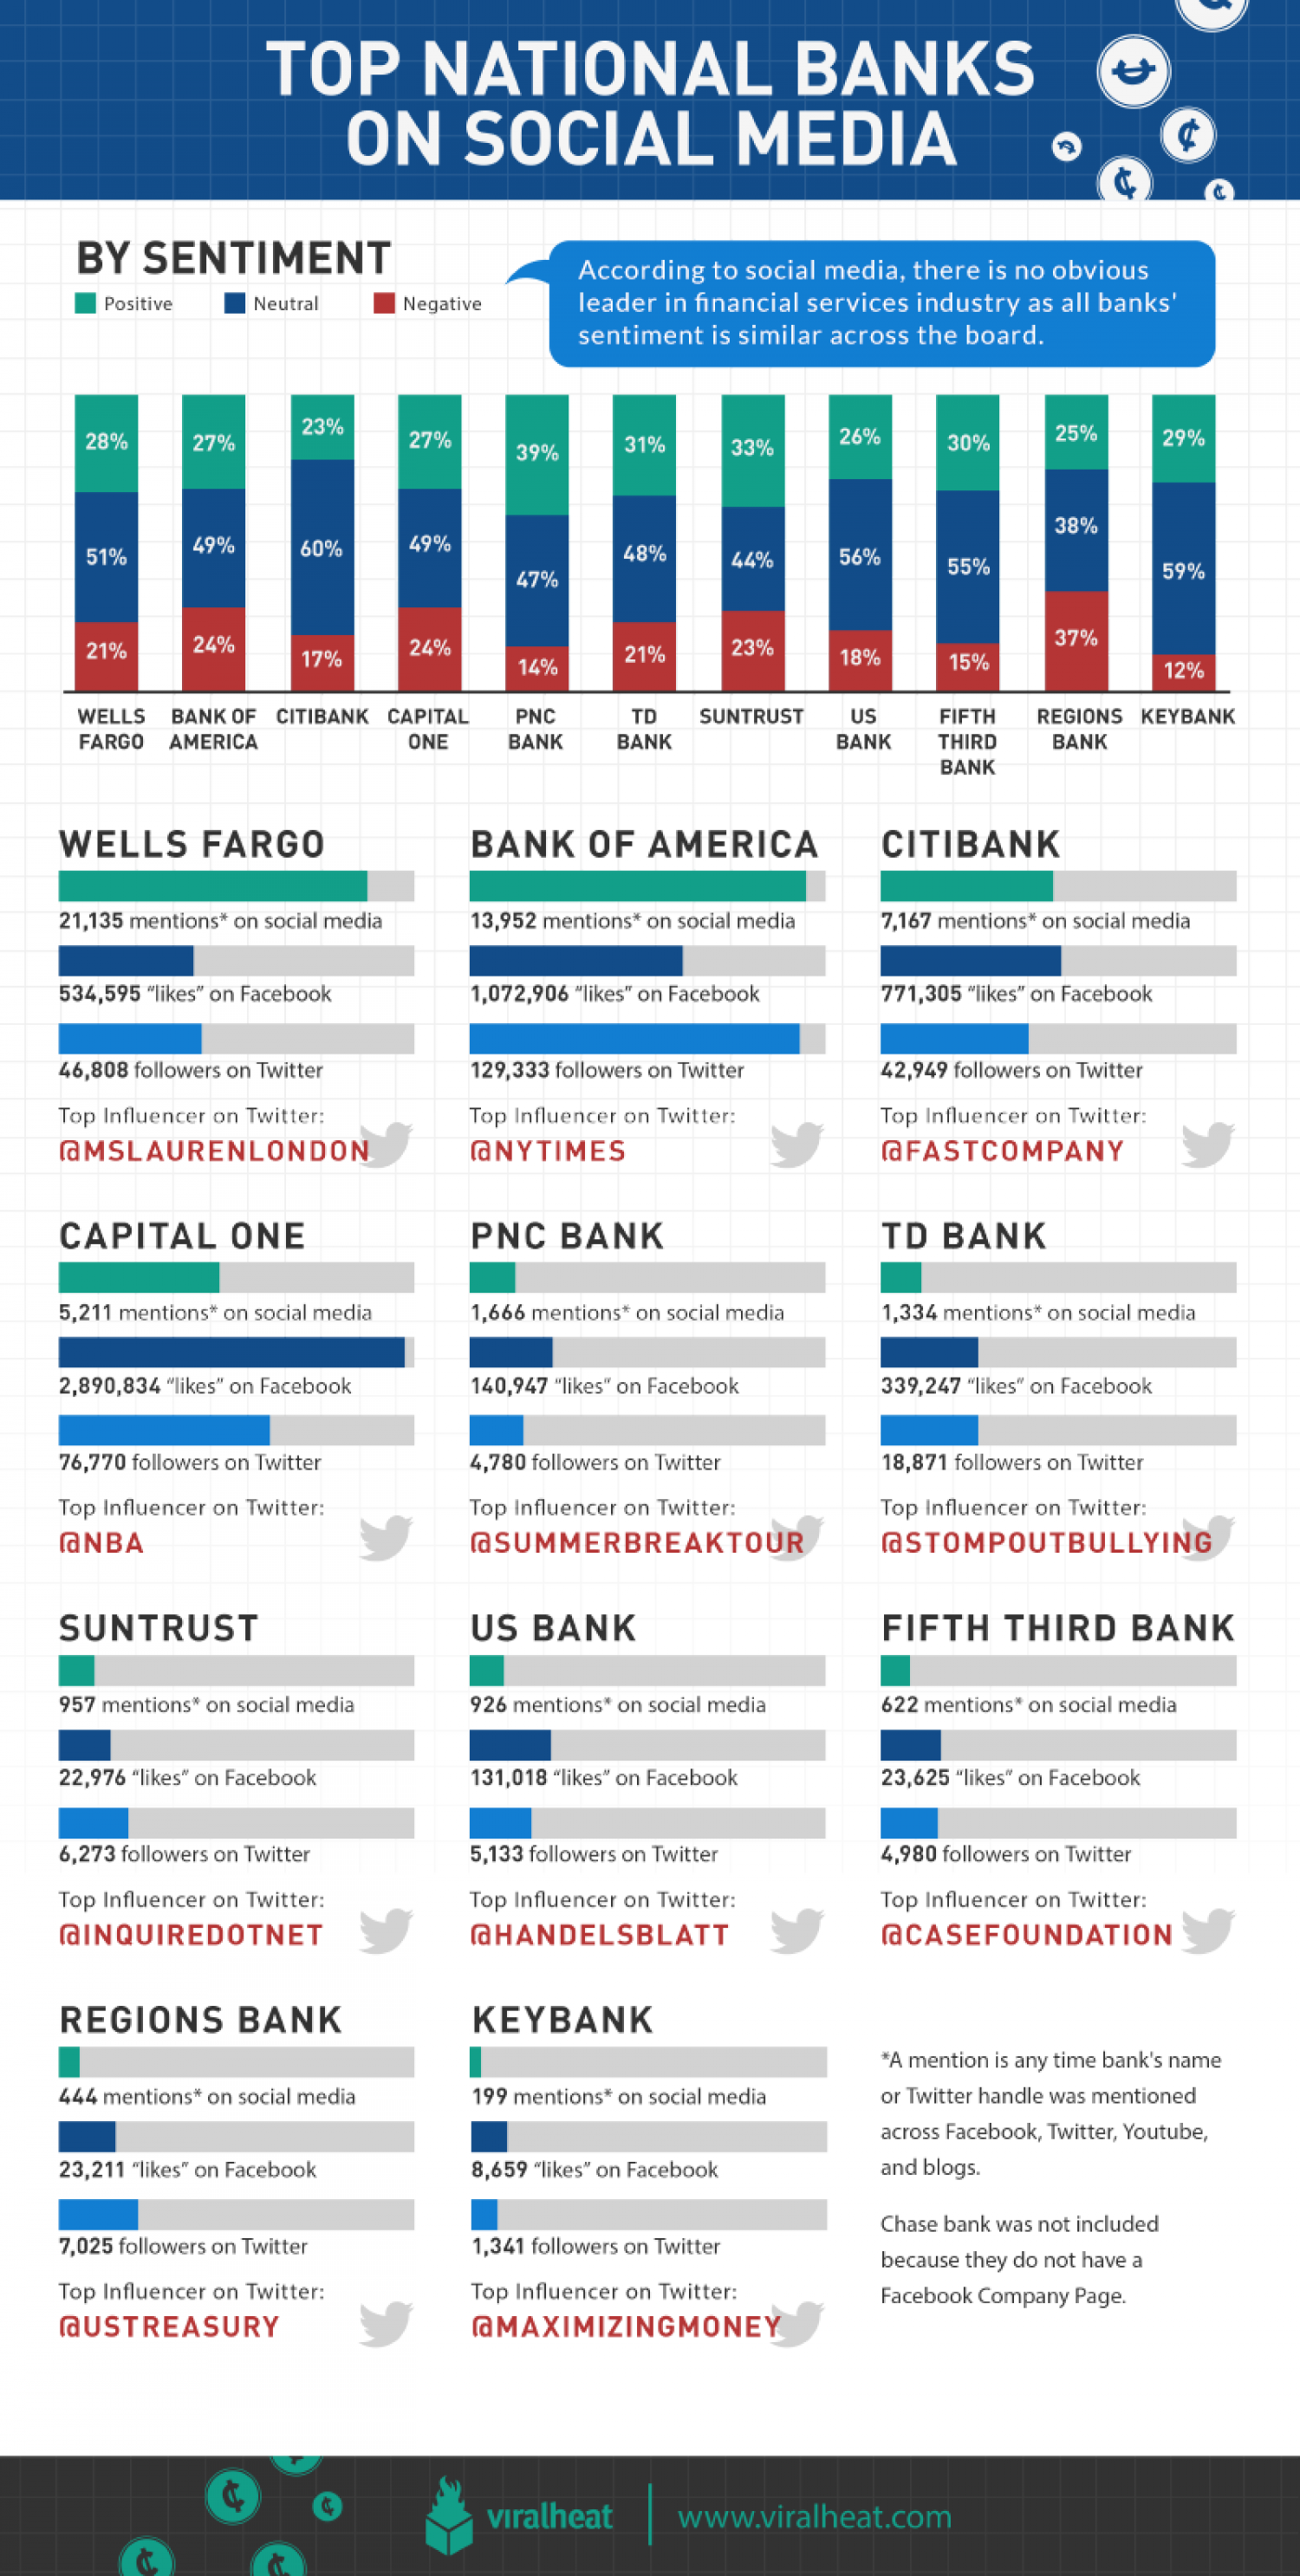 Top National Banks on Social Media Infographic